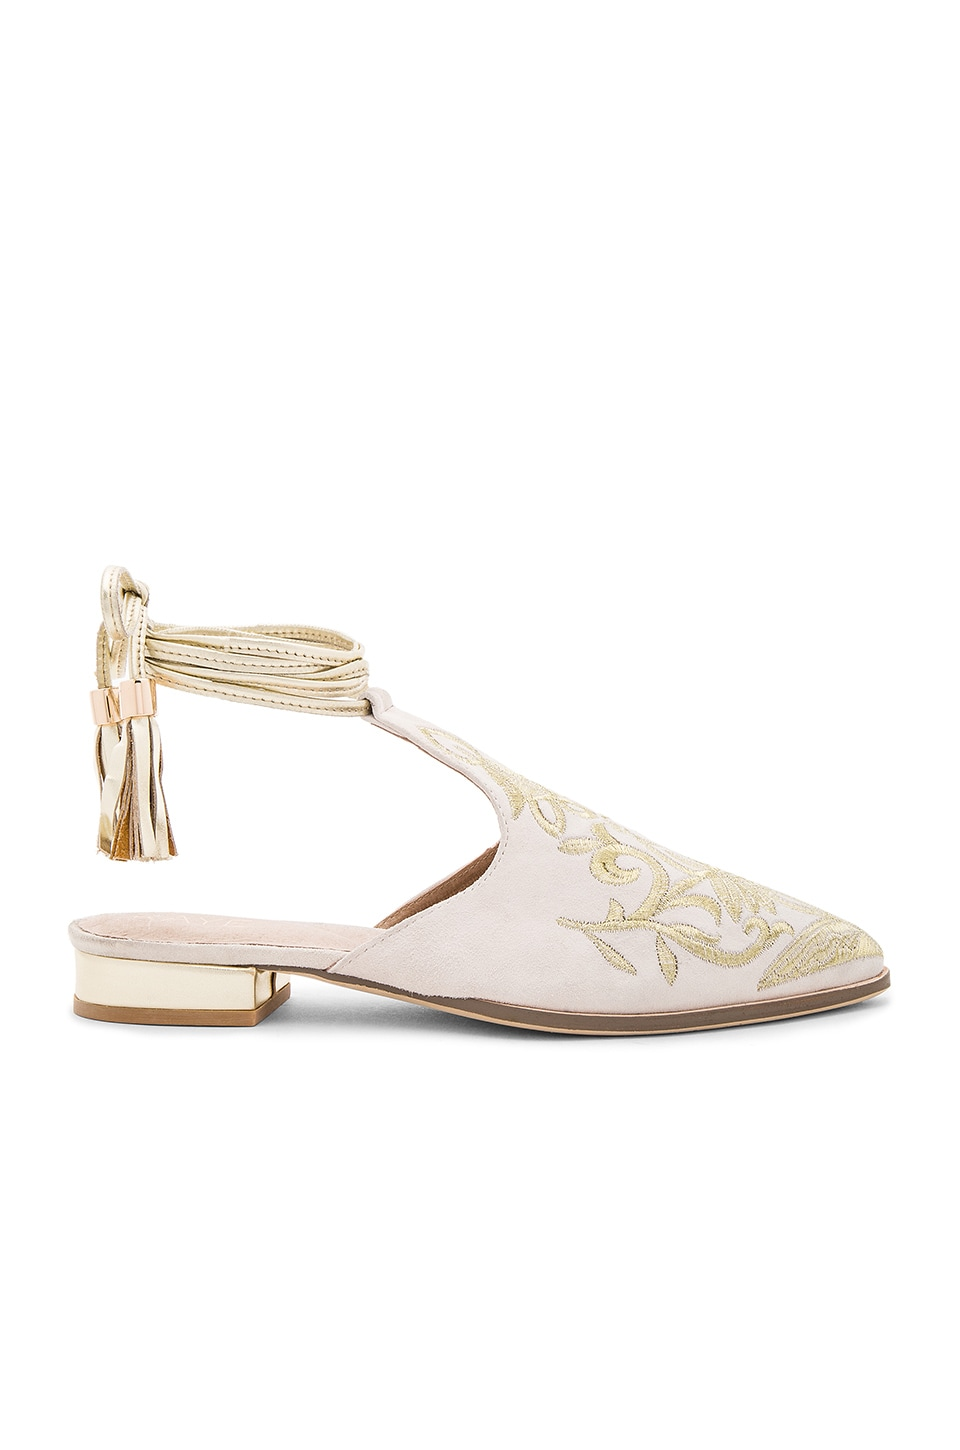 RAYE x REVOLVE Kate Embroidered Slide in Nude